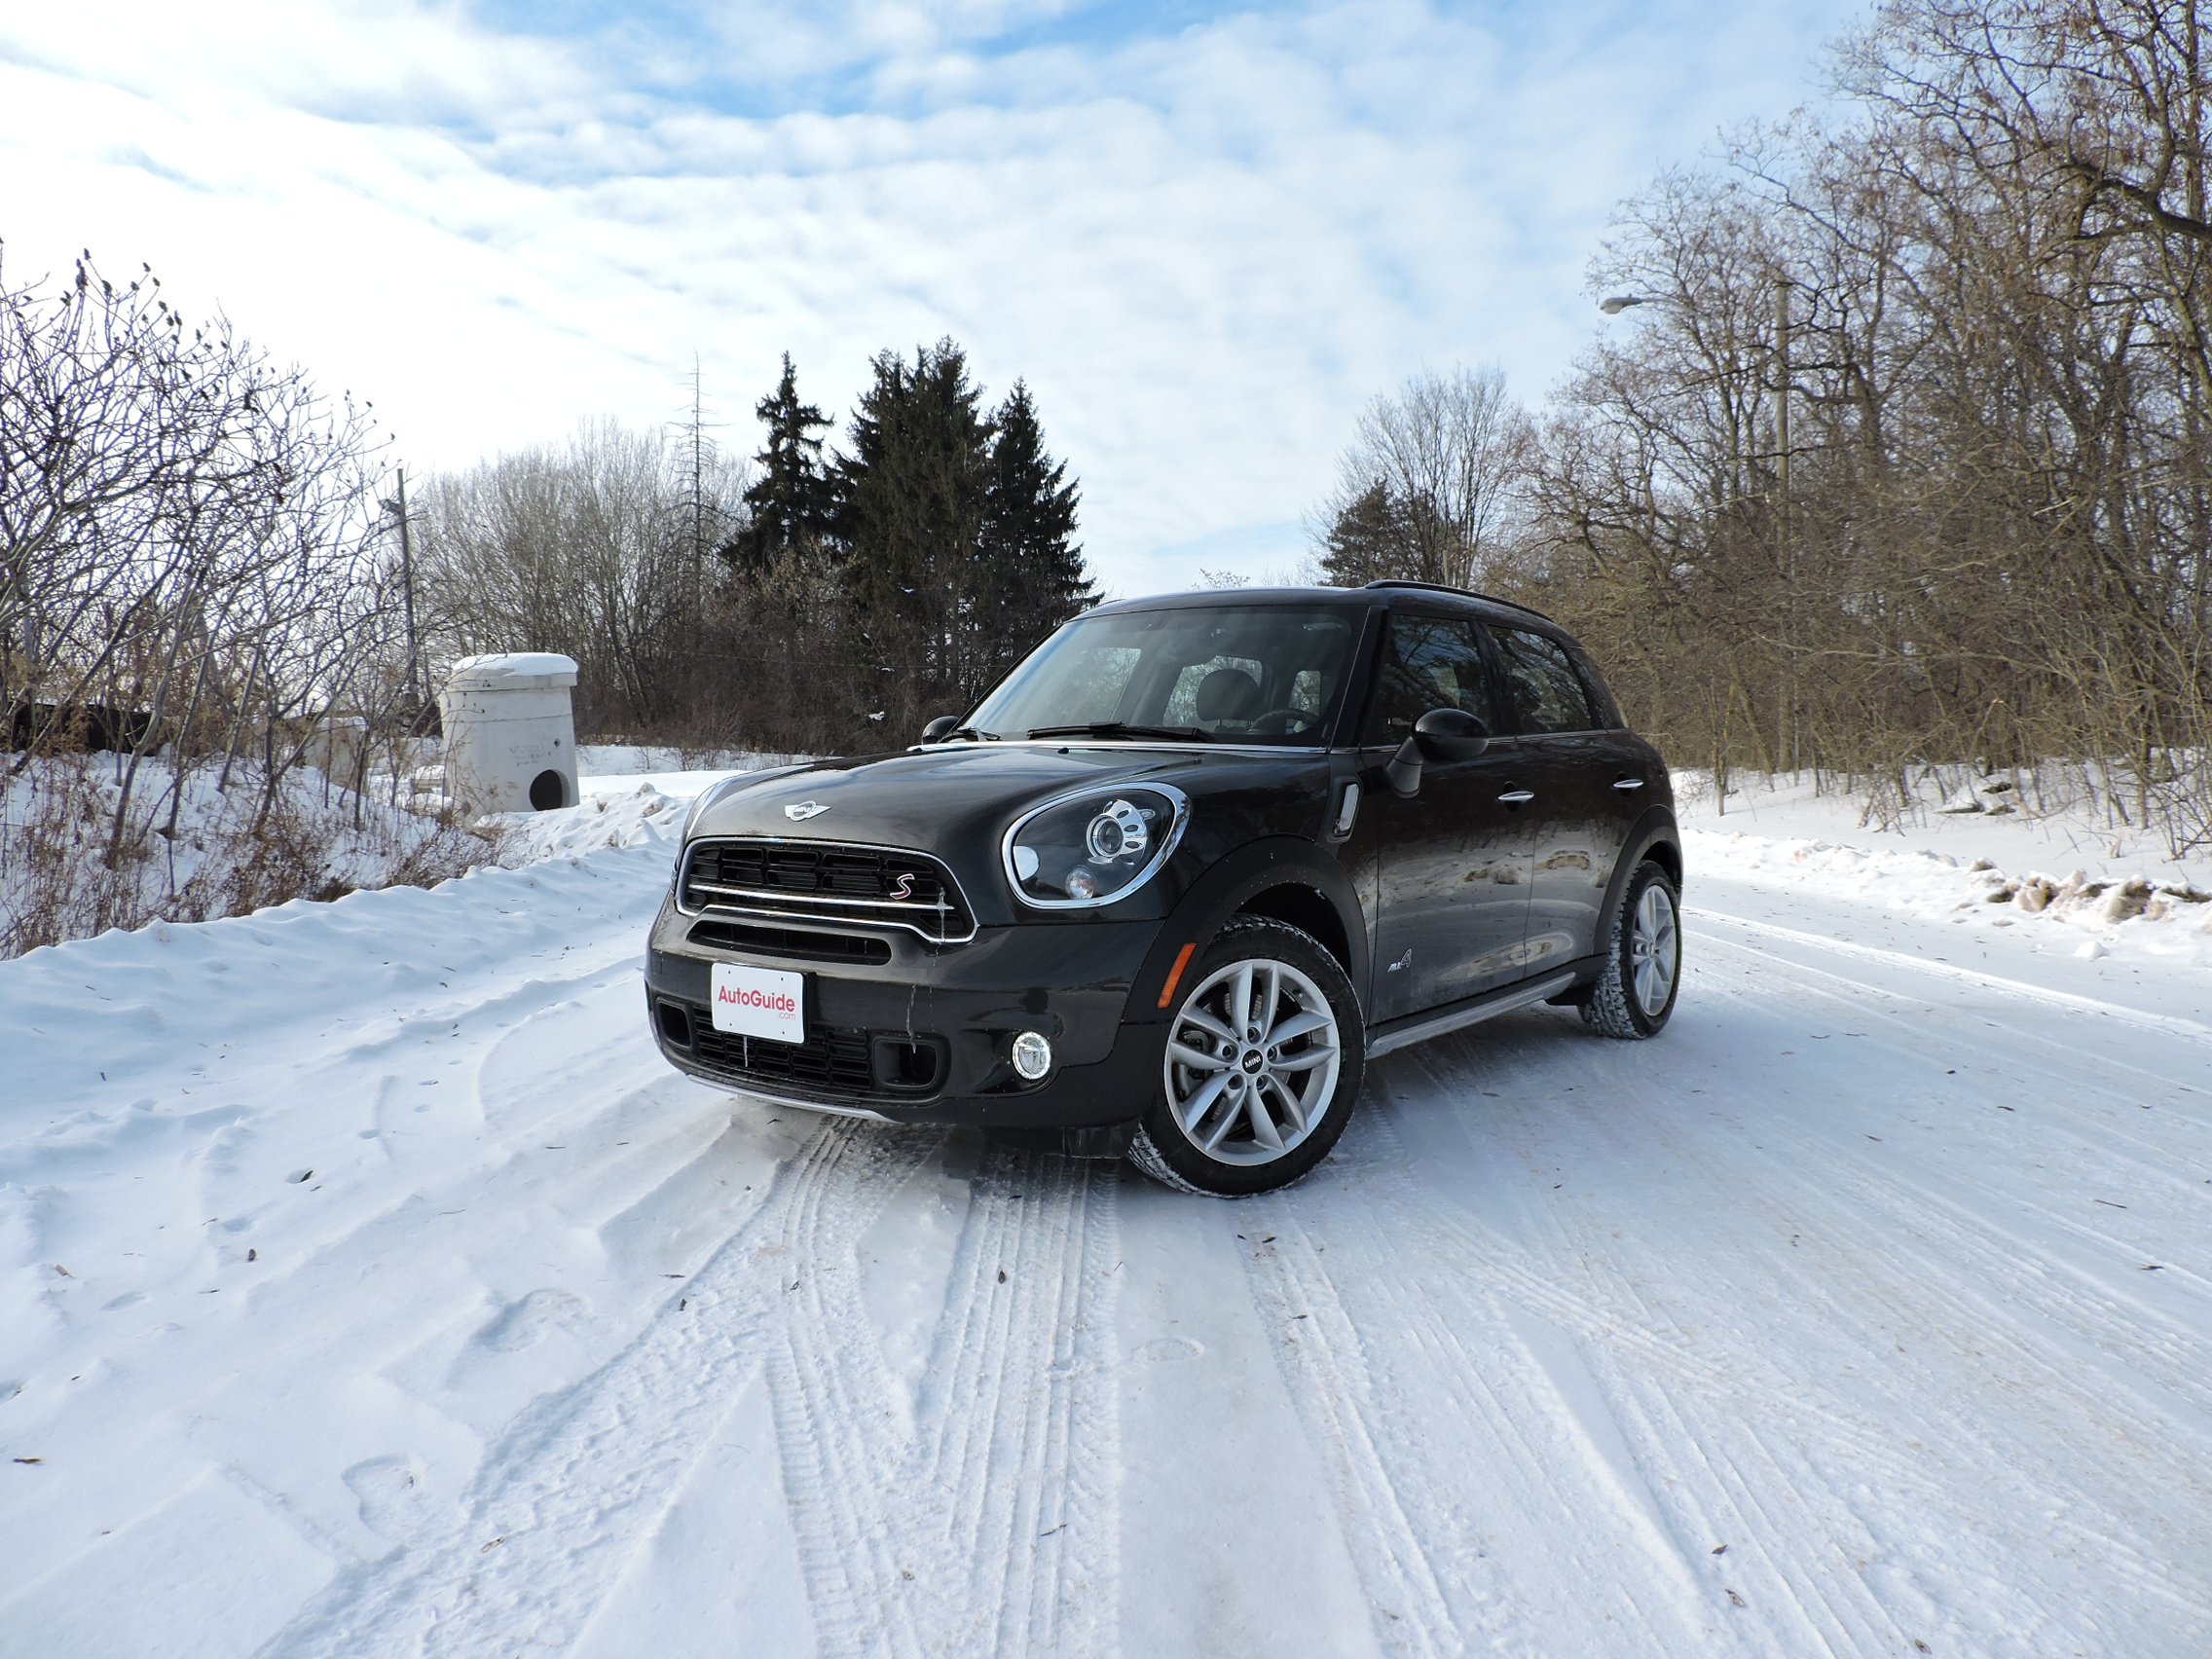 2015 mini cooper s countryman all4 consumer review. Black Bedroom Furniture Sets. Home Design Ideas